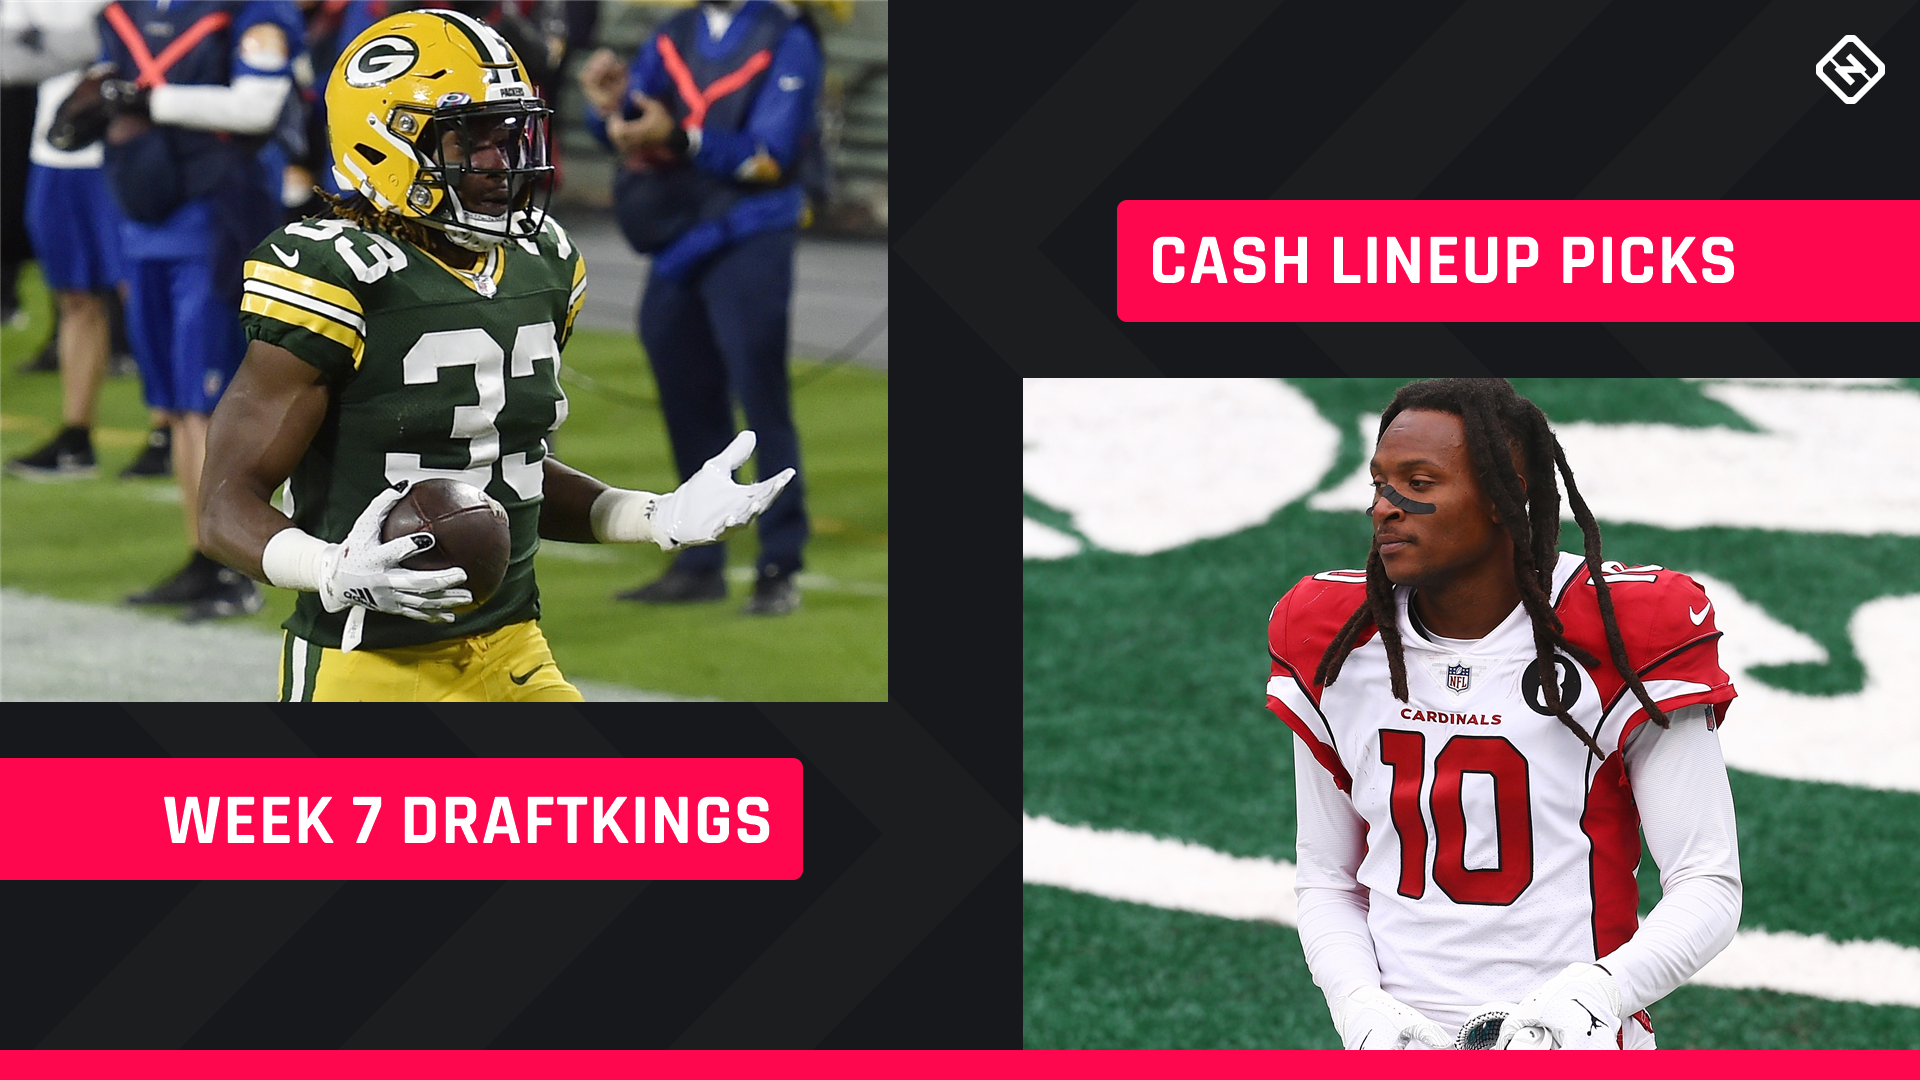 Week 7 Draftkings Picks Nfl Dfs Lineup Advice For Daily Fantasy Football Cash Games Sporting News